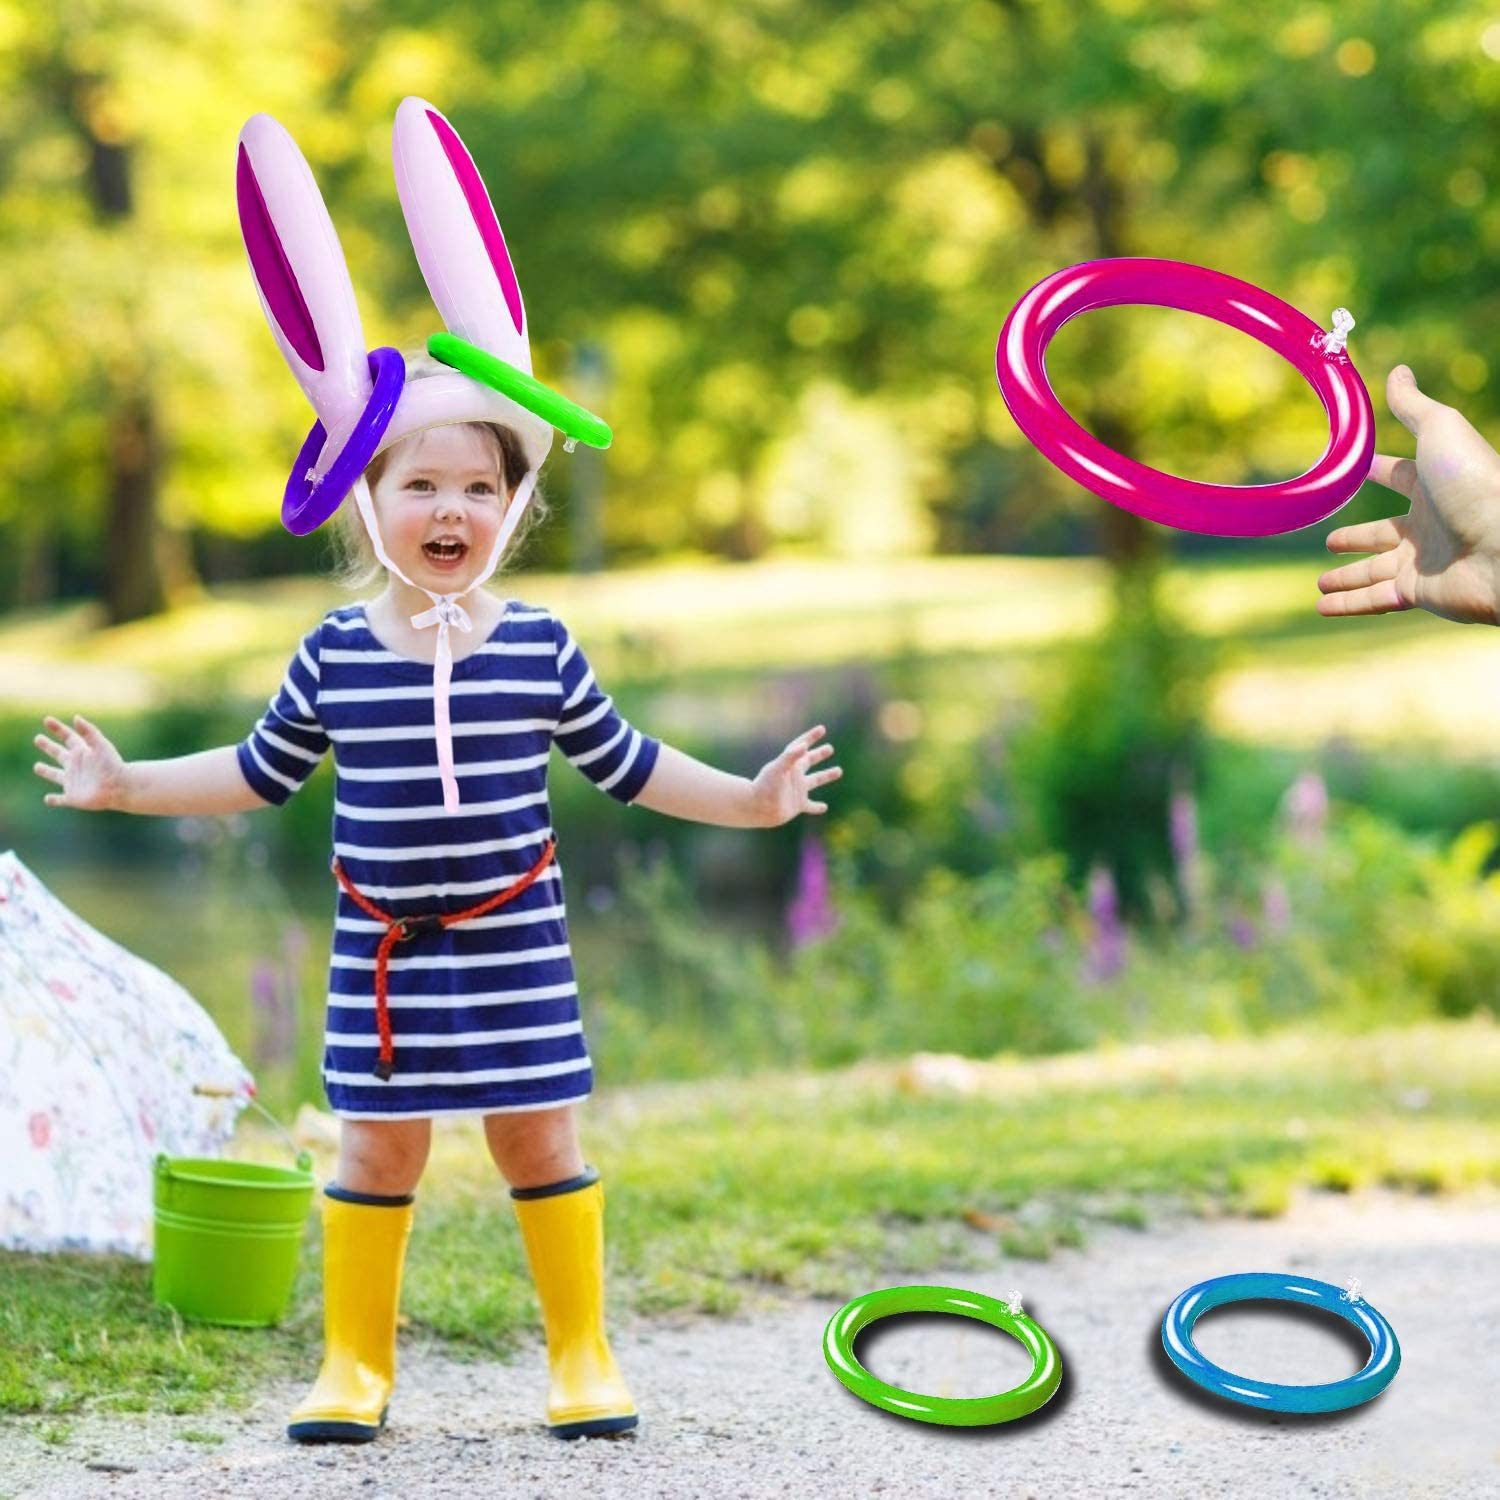 3 Pack Easter Inflatable Bunny Ring Toss Game Easter Rabbit Ears Ring Toss Party Games Inflatable Toys Gift for Kid Family School Party Favor Indoor Outdoor Toss Game (3 Set & 12 Rings